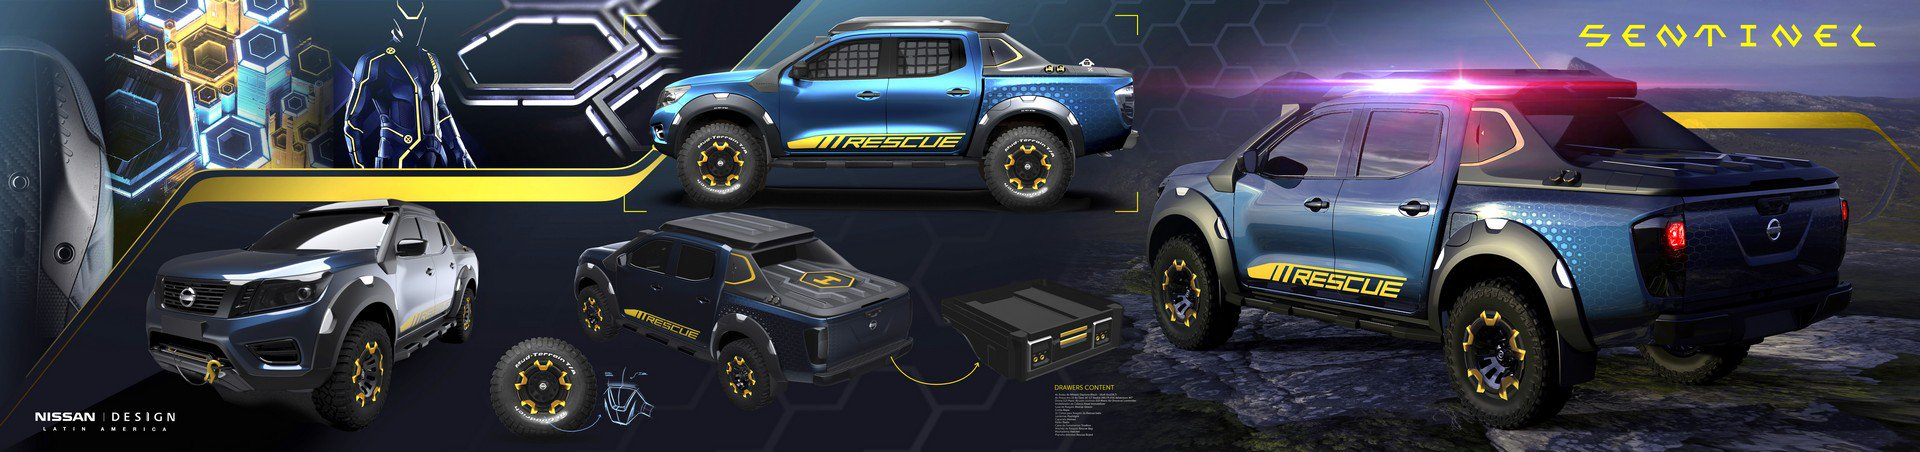 Nissan Frontier Sentinel Concept (31)